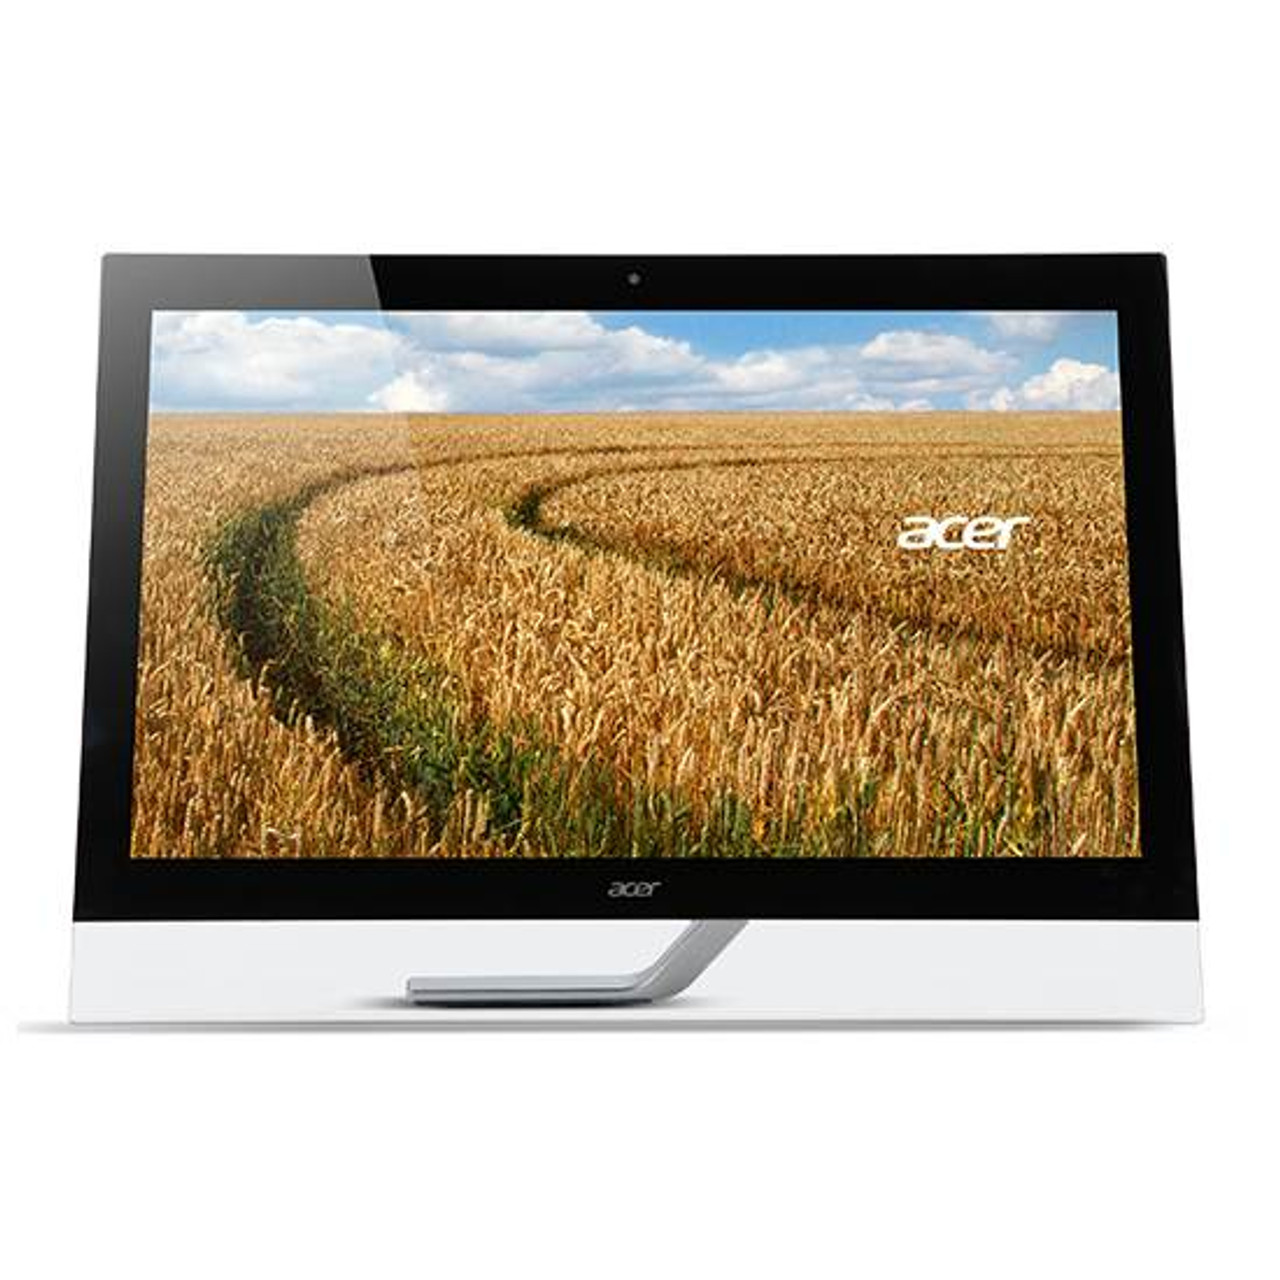 Product image for Acer T272HUL 27in 16:9 WQHD IPS LED Touchscreen Monitor | CX Computer Superstore